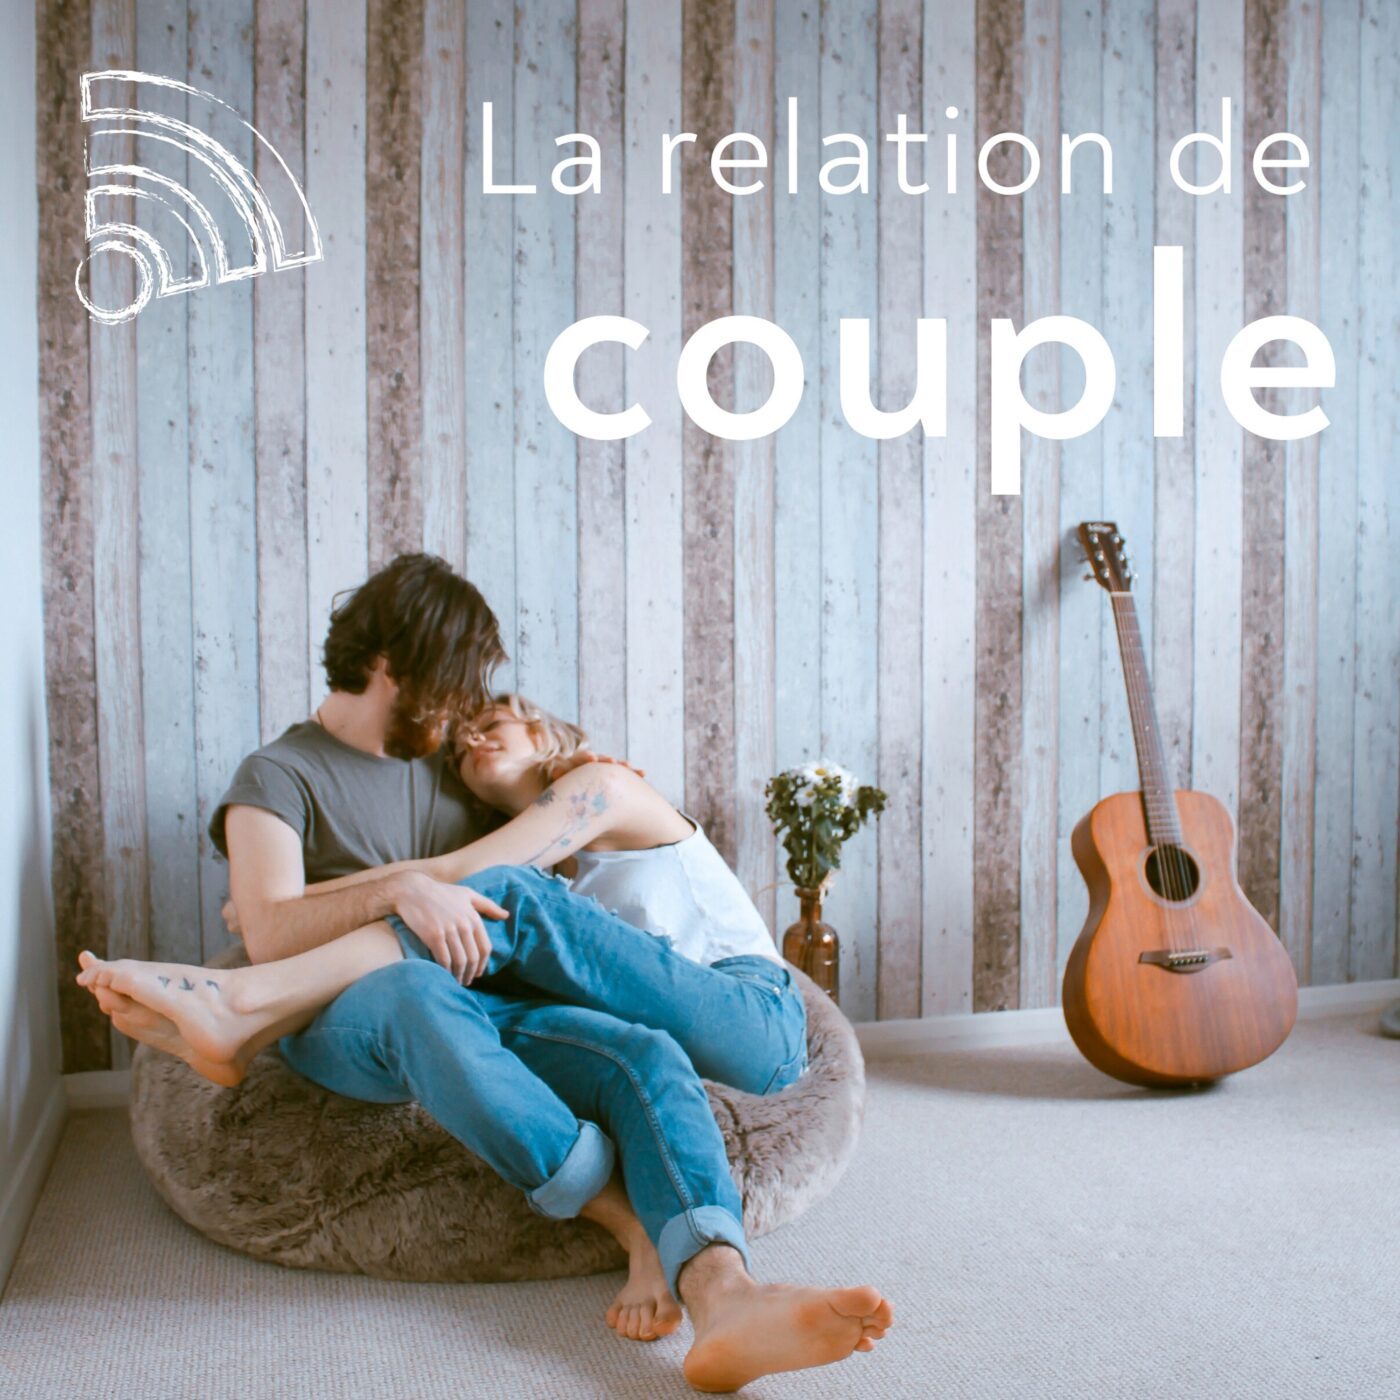 La relation de couple